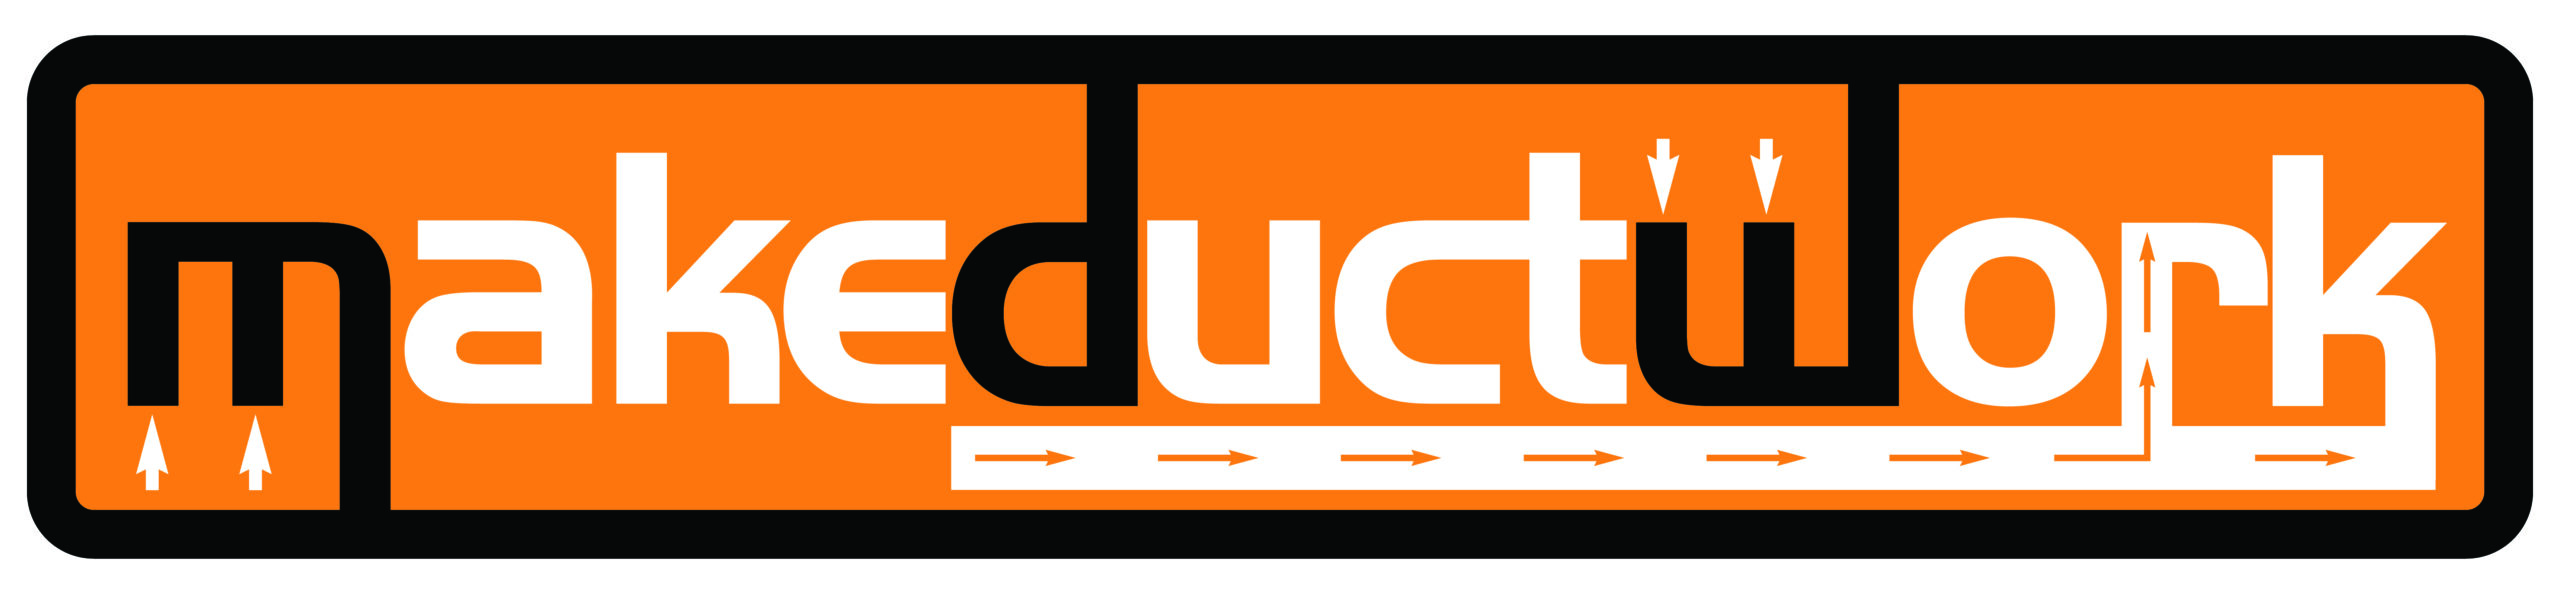 Make Duct Work . CO . UK